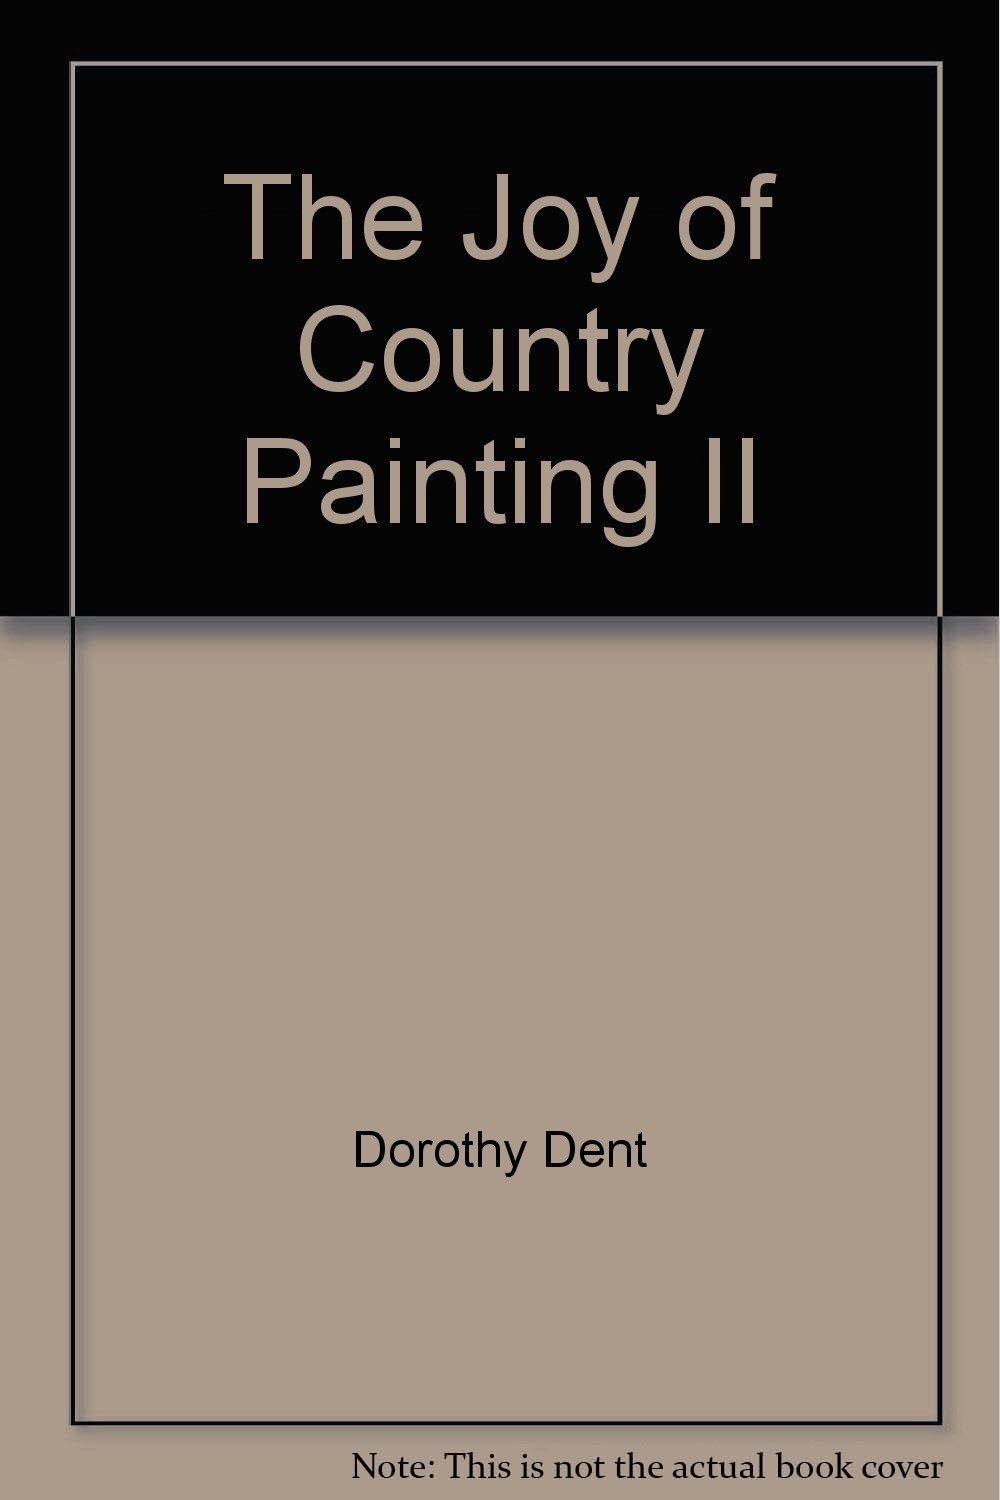 The Joy of Country Painting